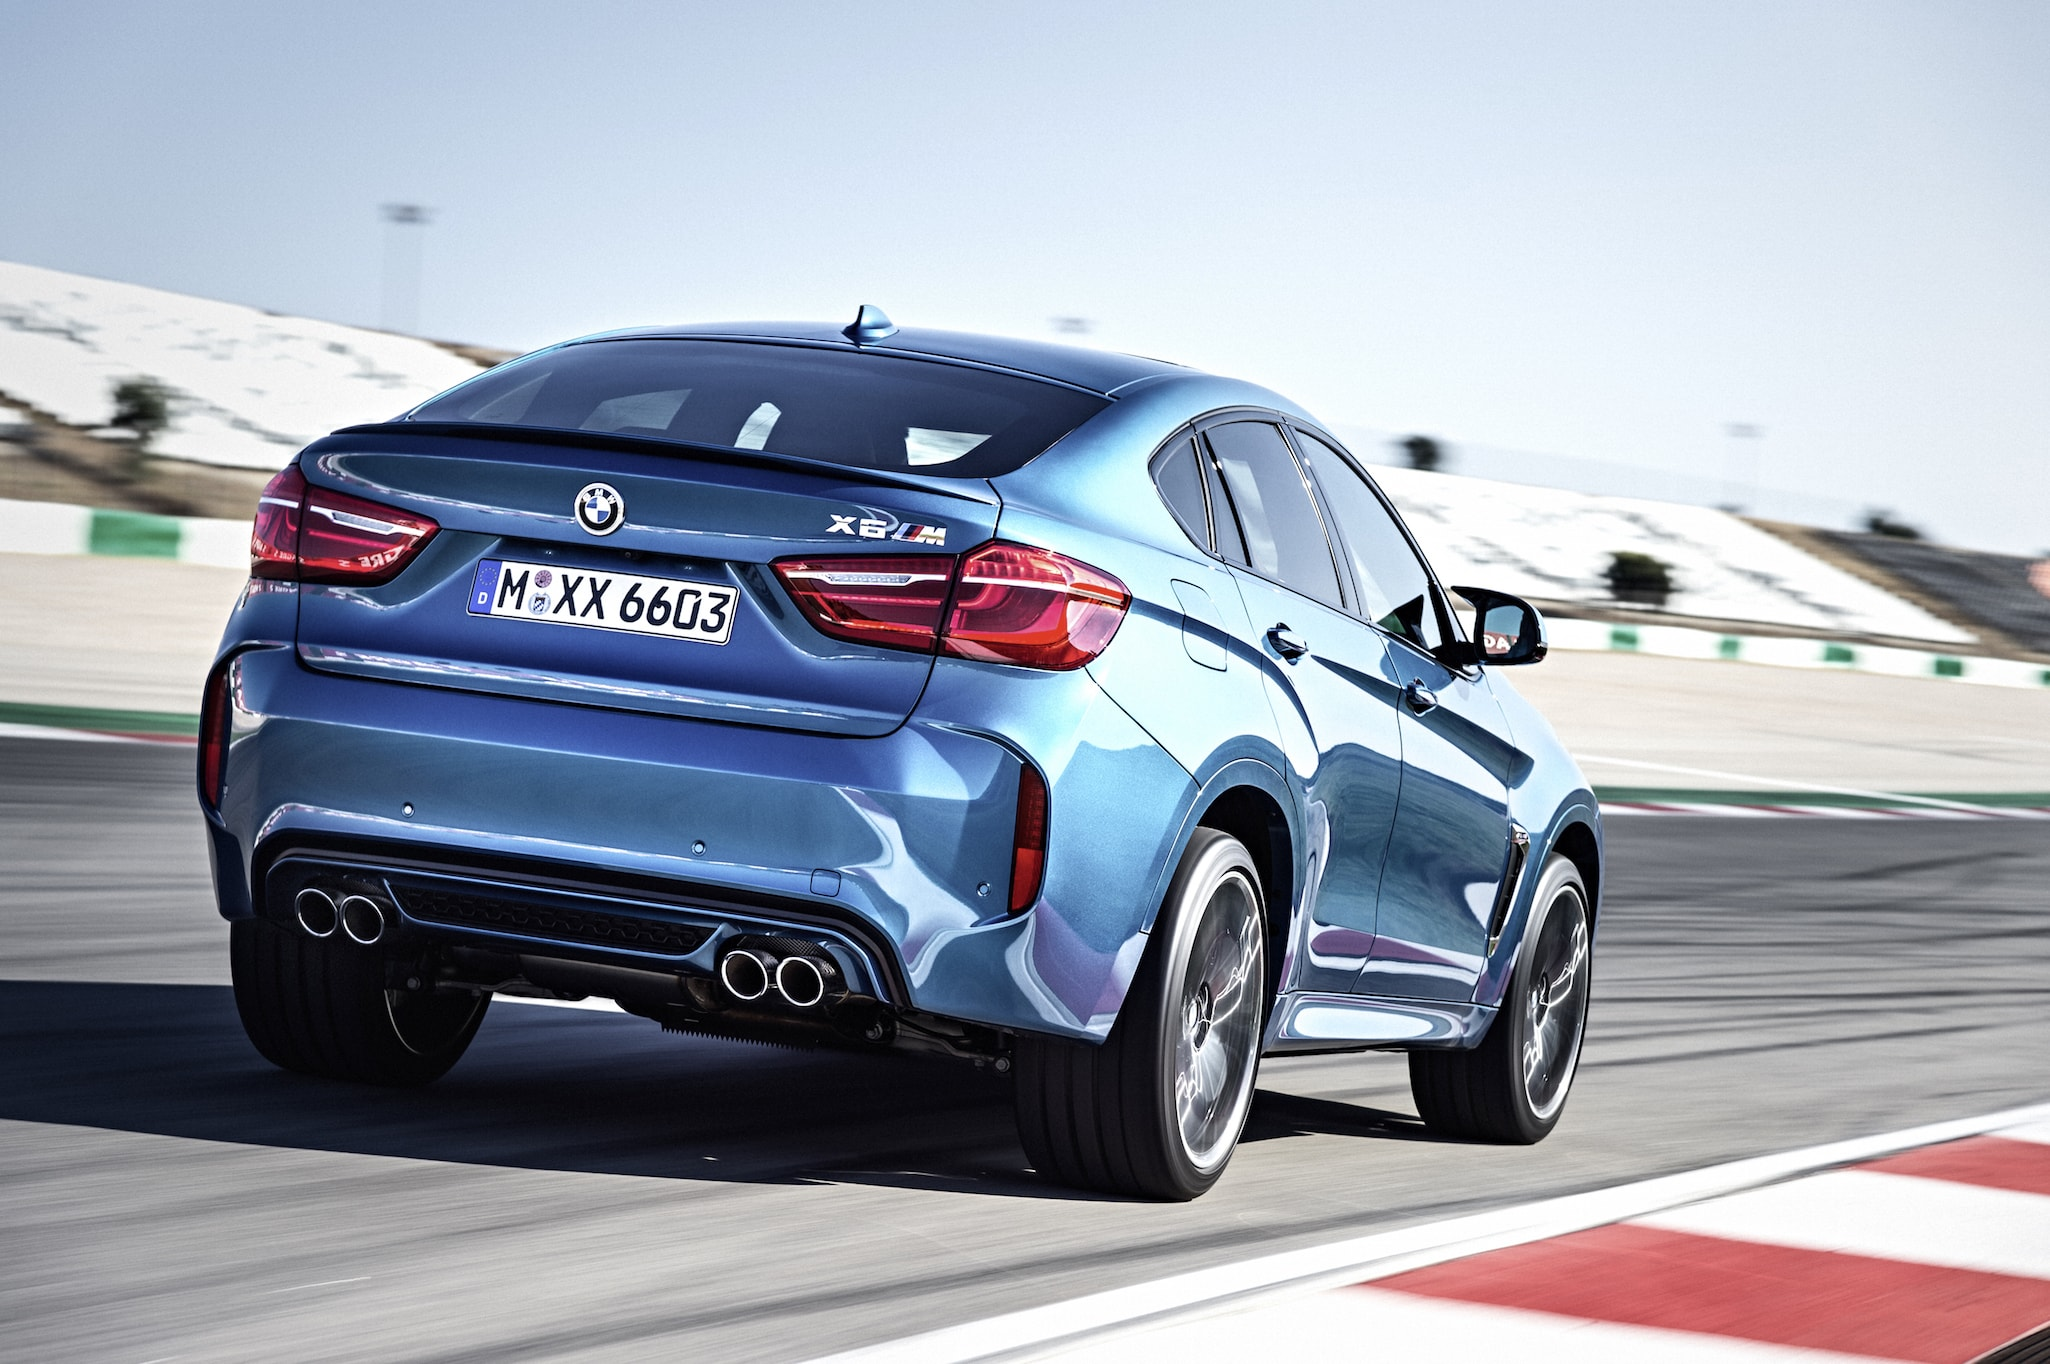 BMW X6 M (F86) widescreen wallpapers